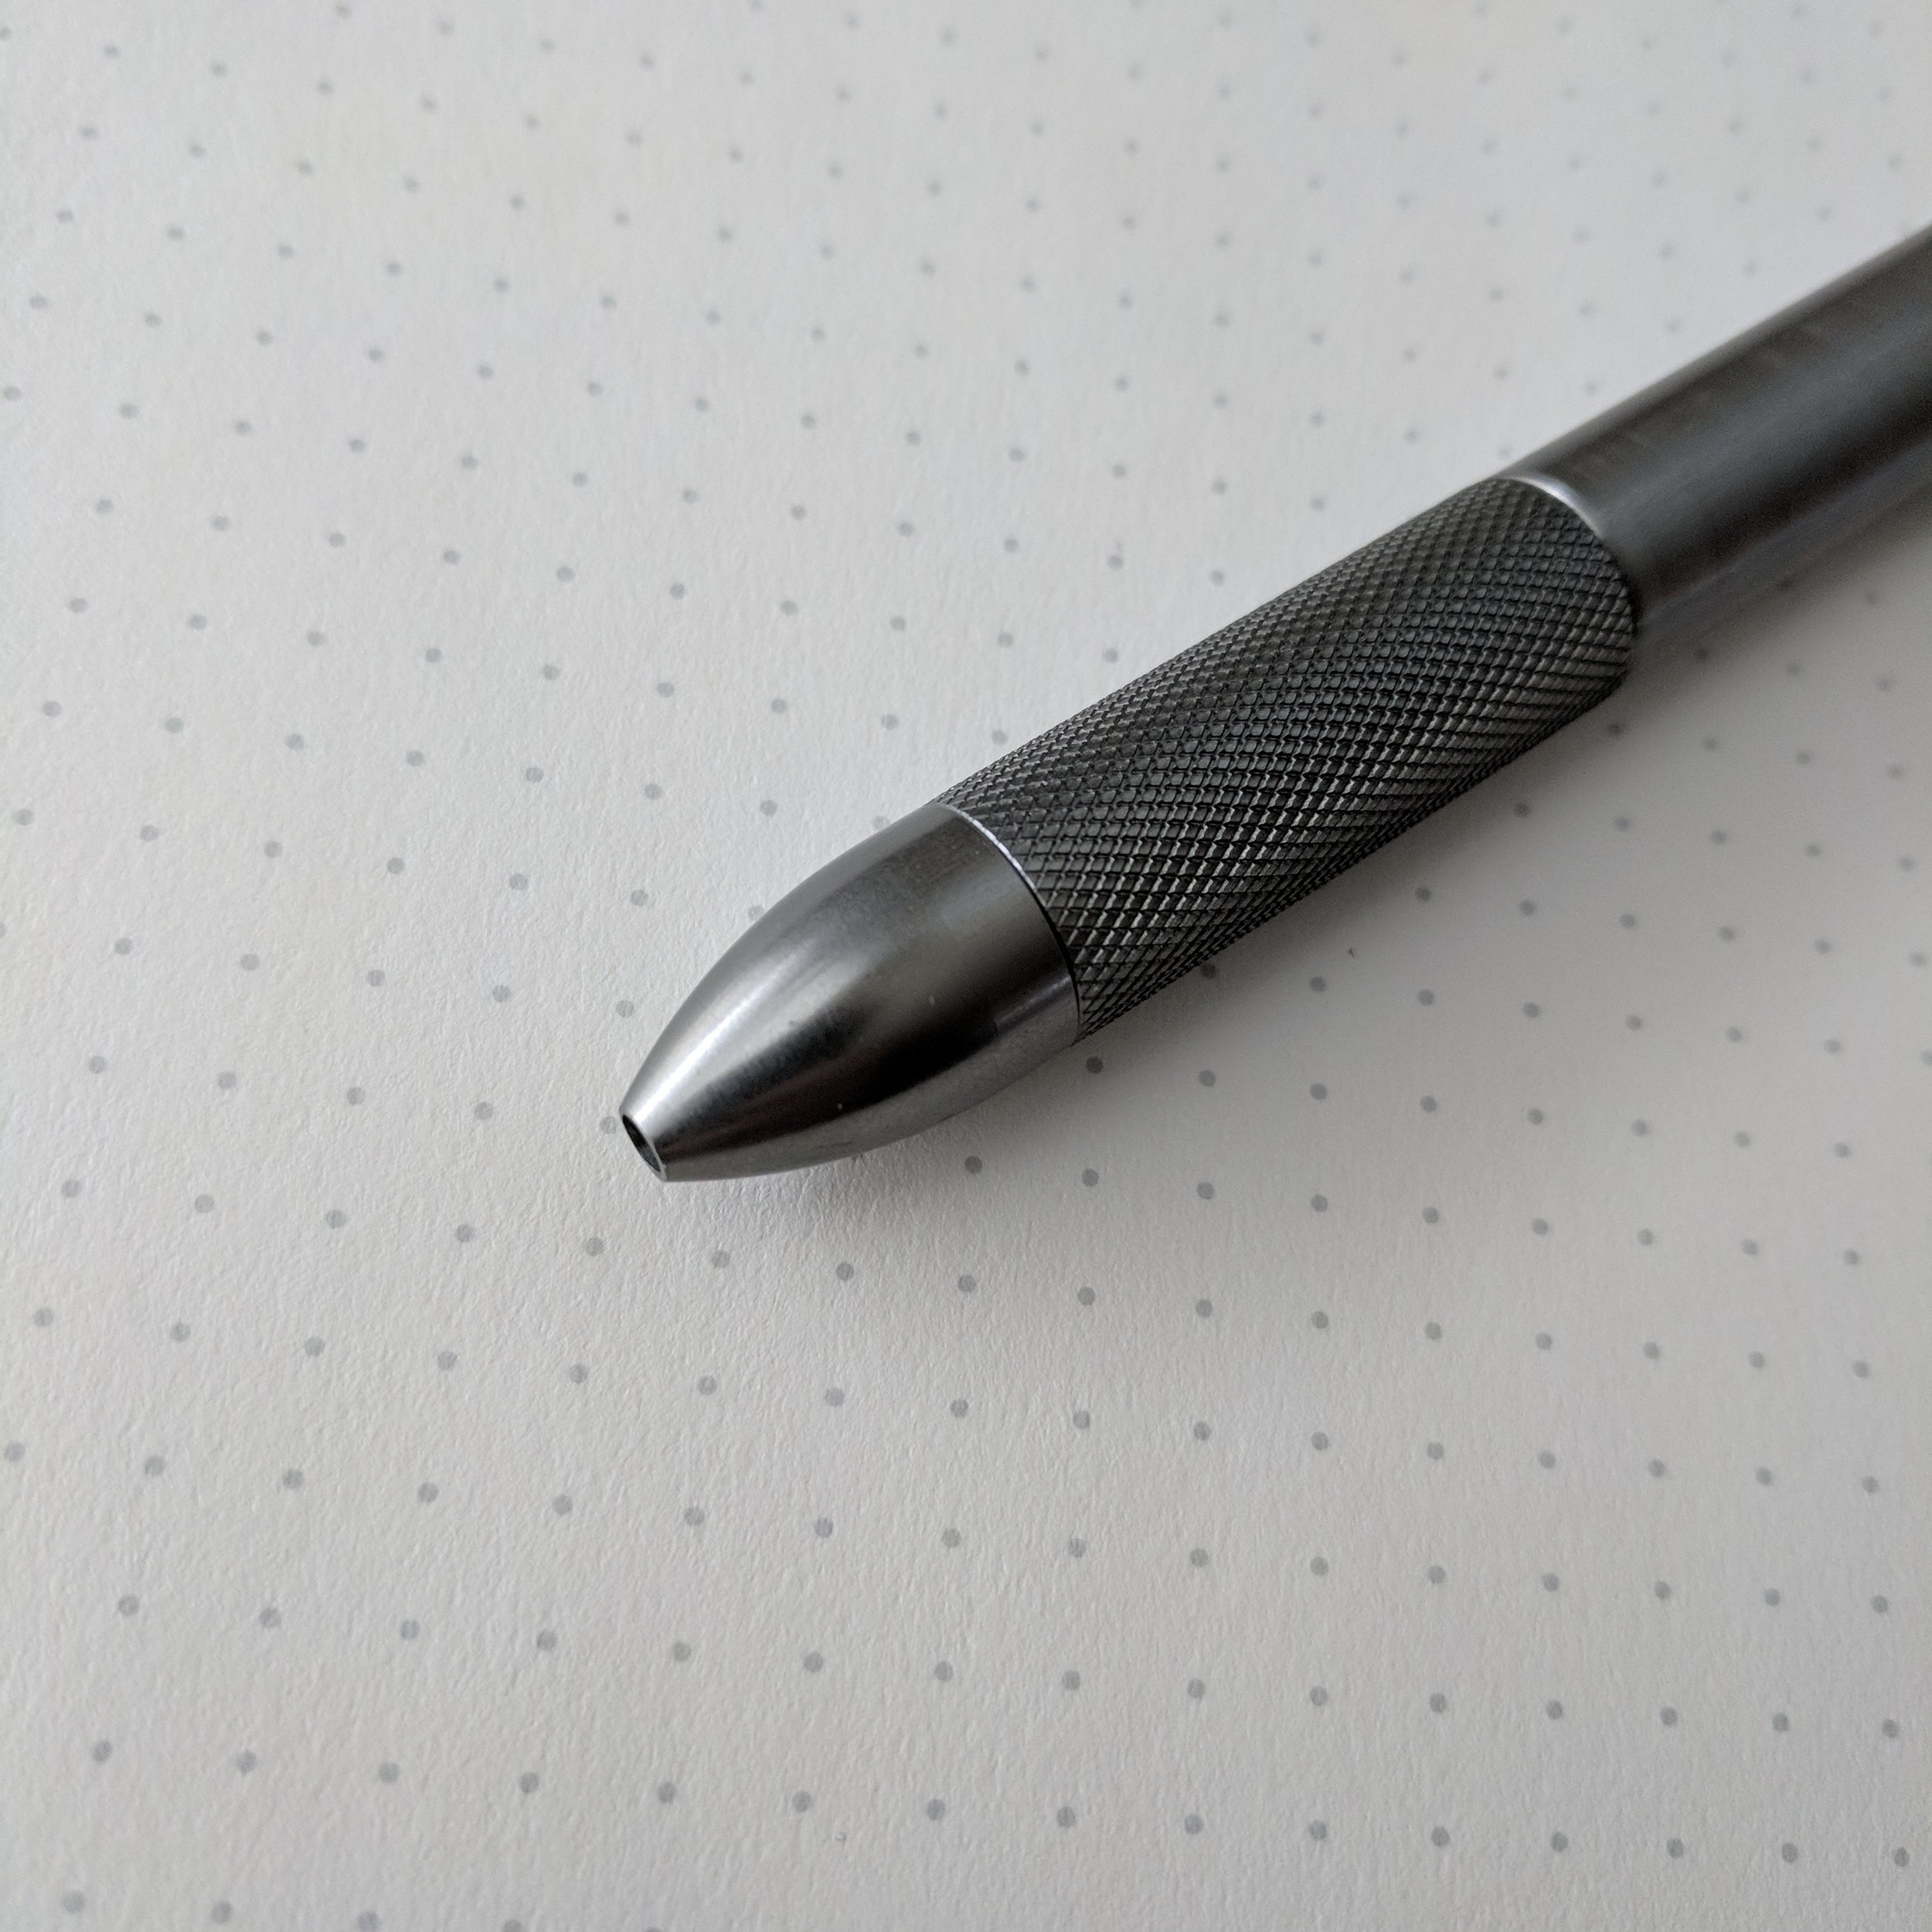 Textured Grip on Gray Pen